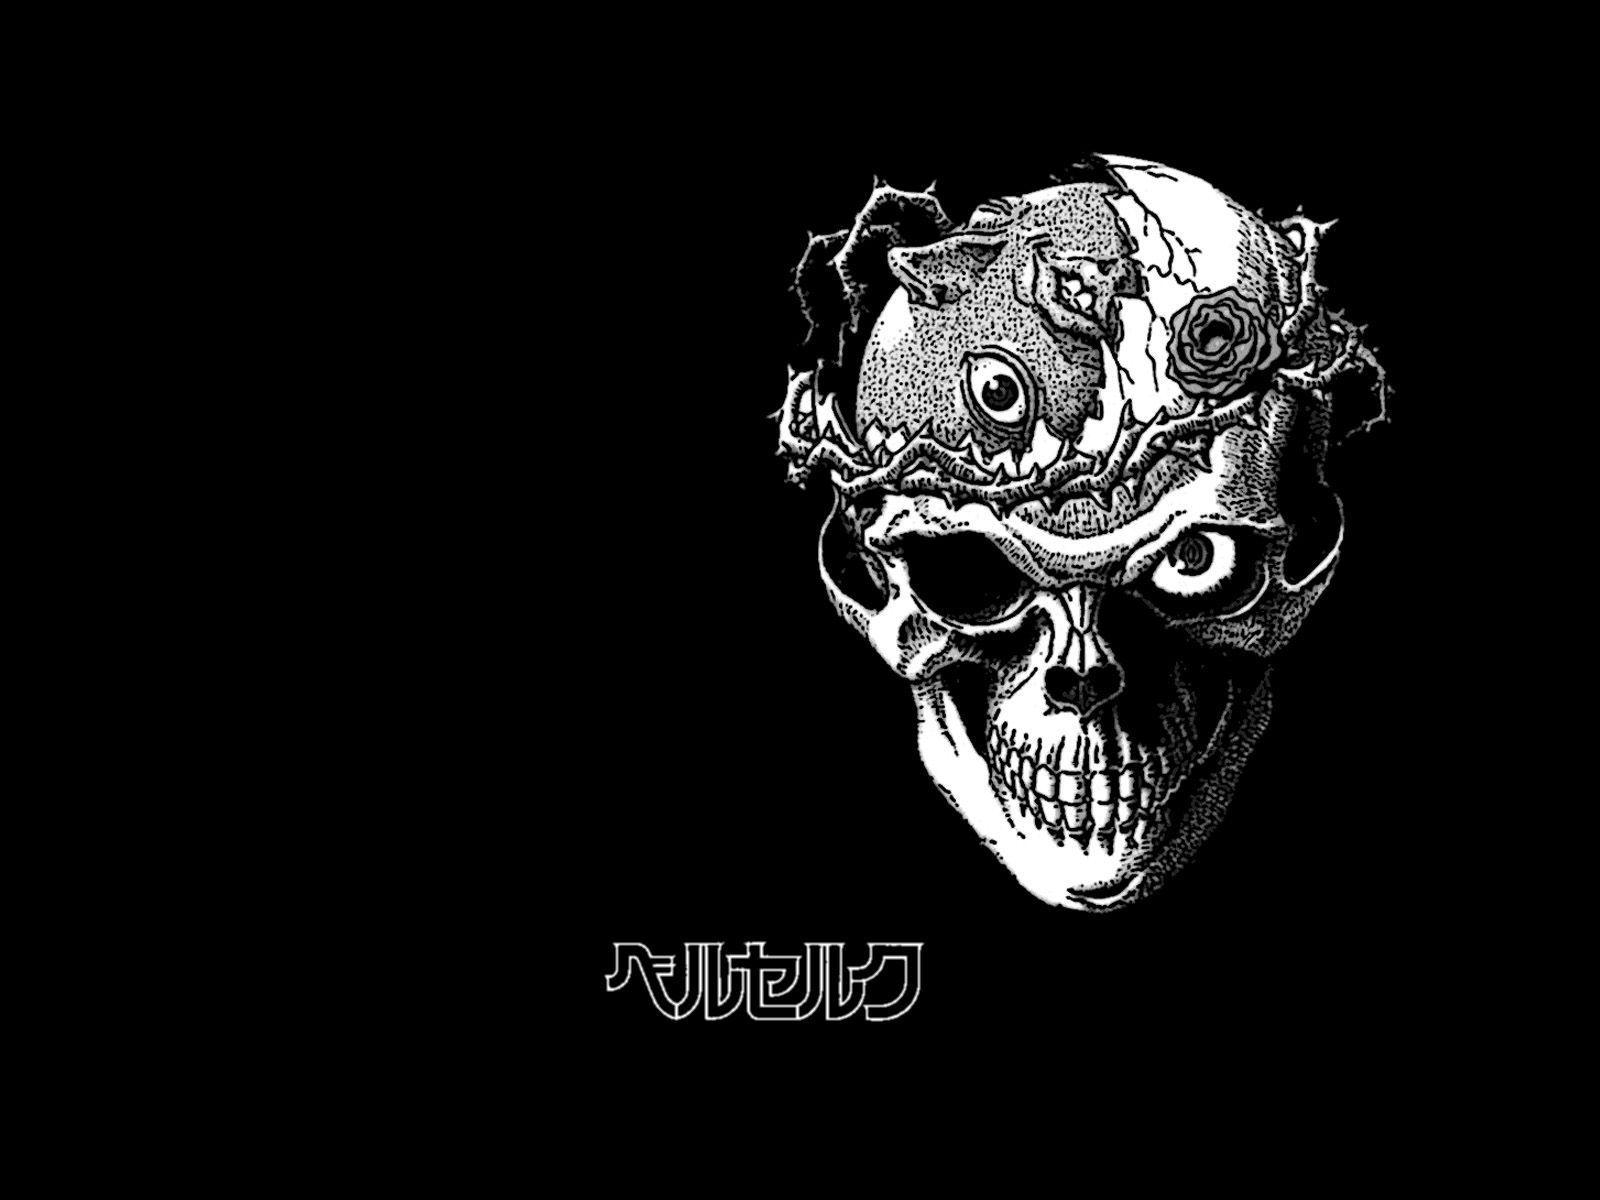 Black And White Skull Wallpapers Top Free Black And White Skull